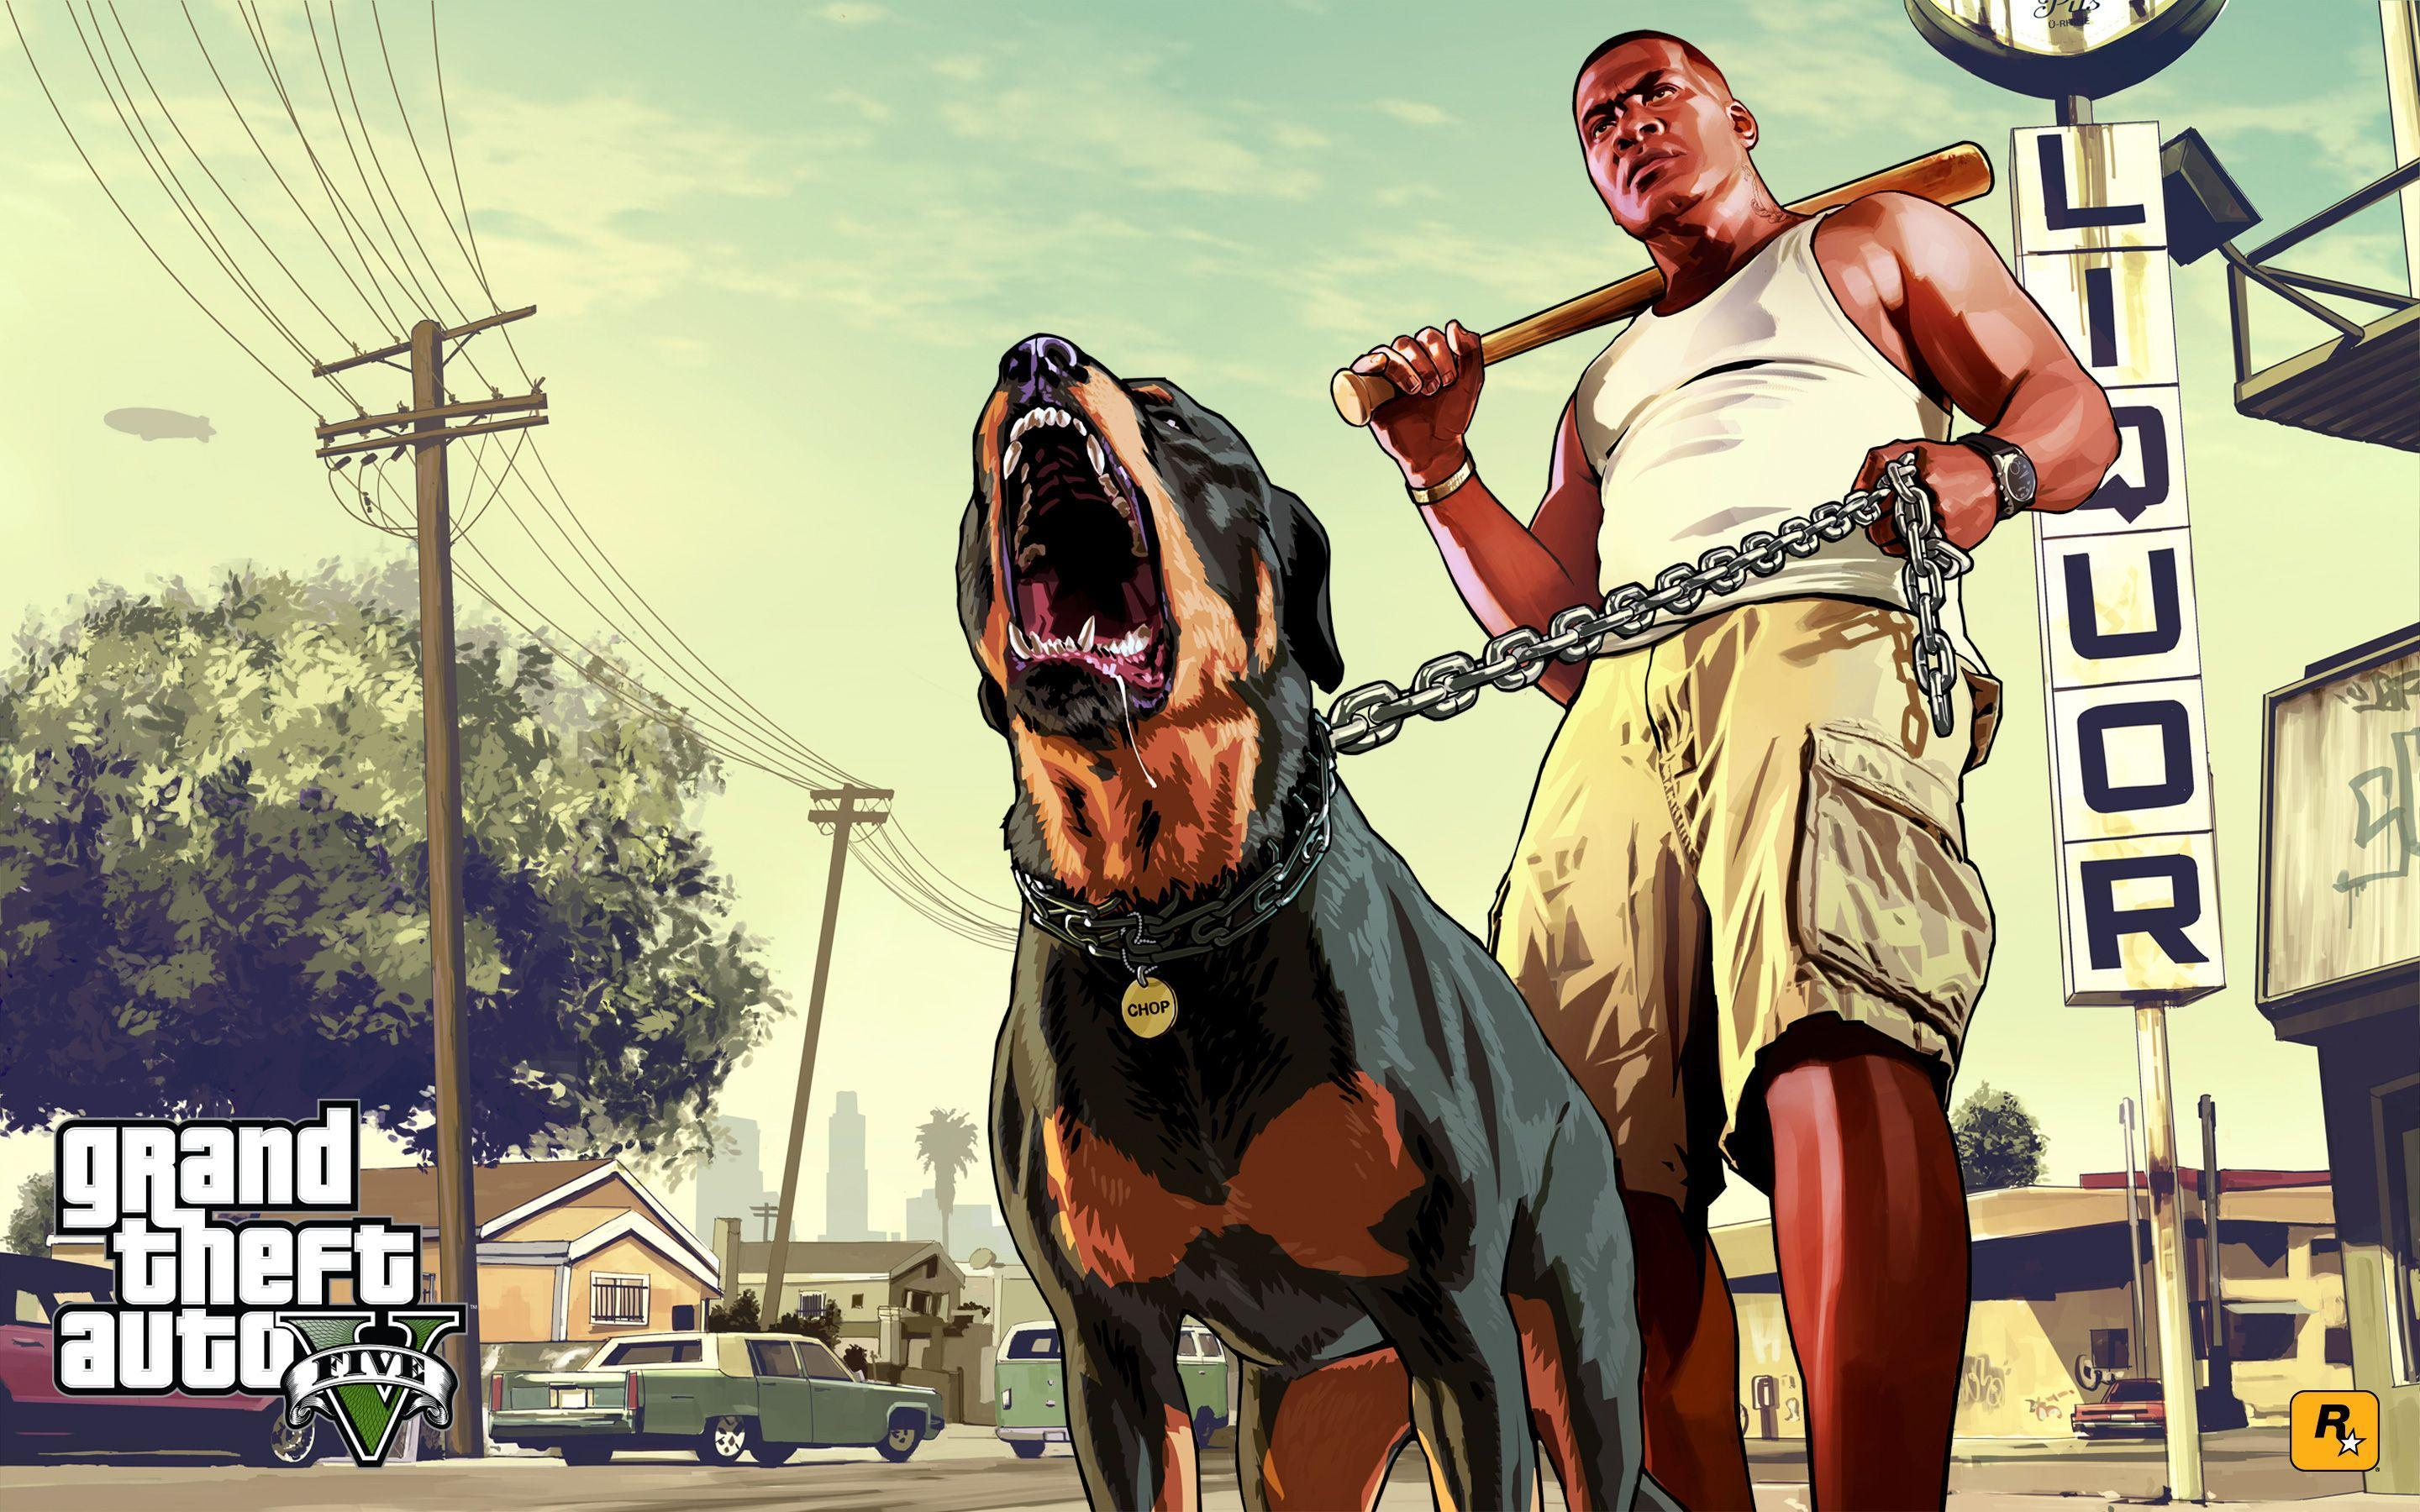 Grand Theft Auto V Hd Wallpapers Backgrounds Wallpaper Abyss